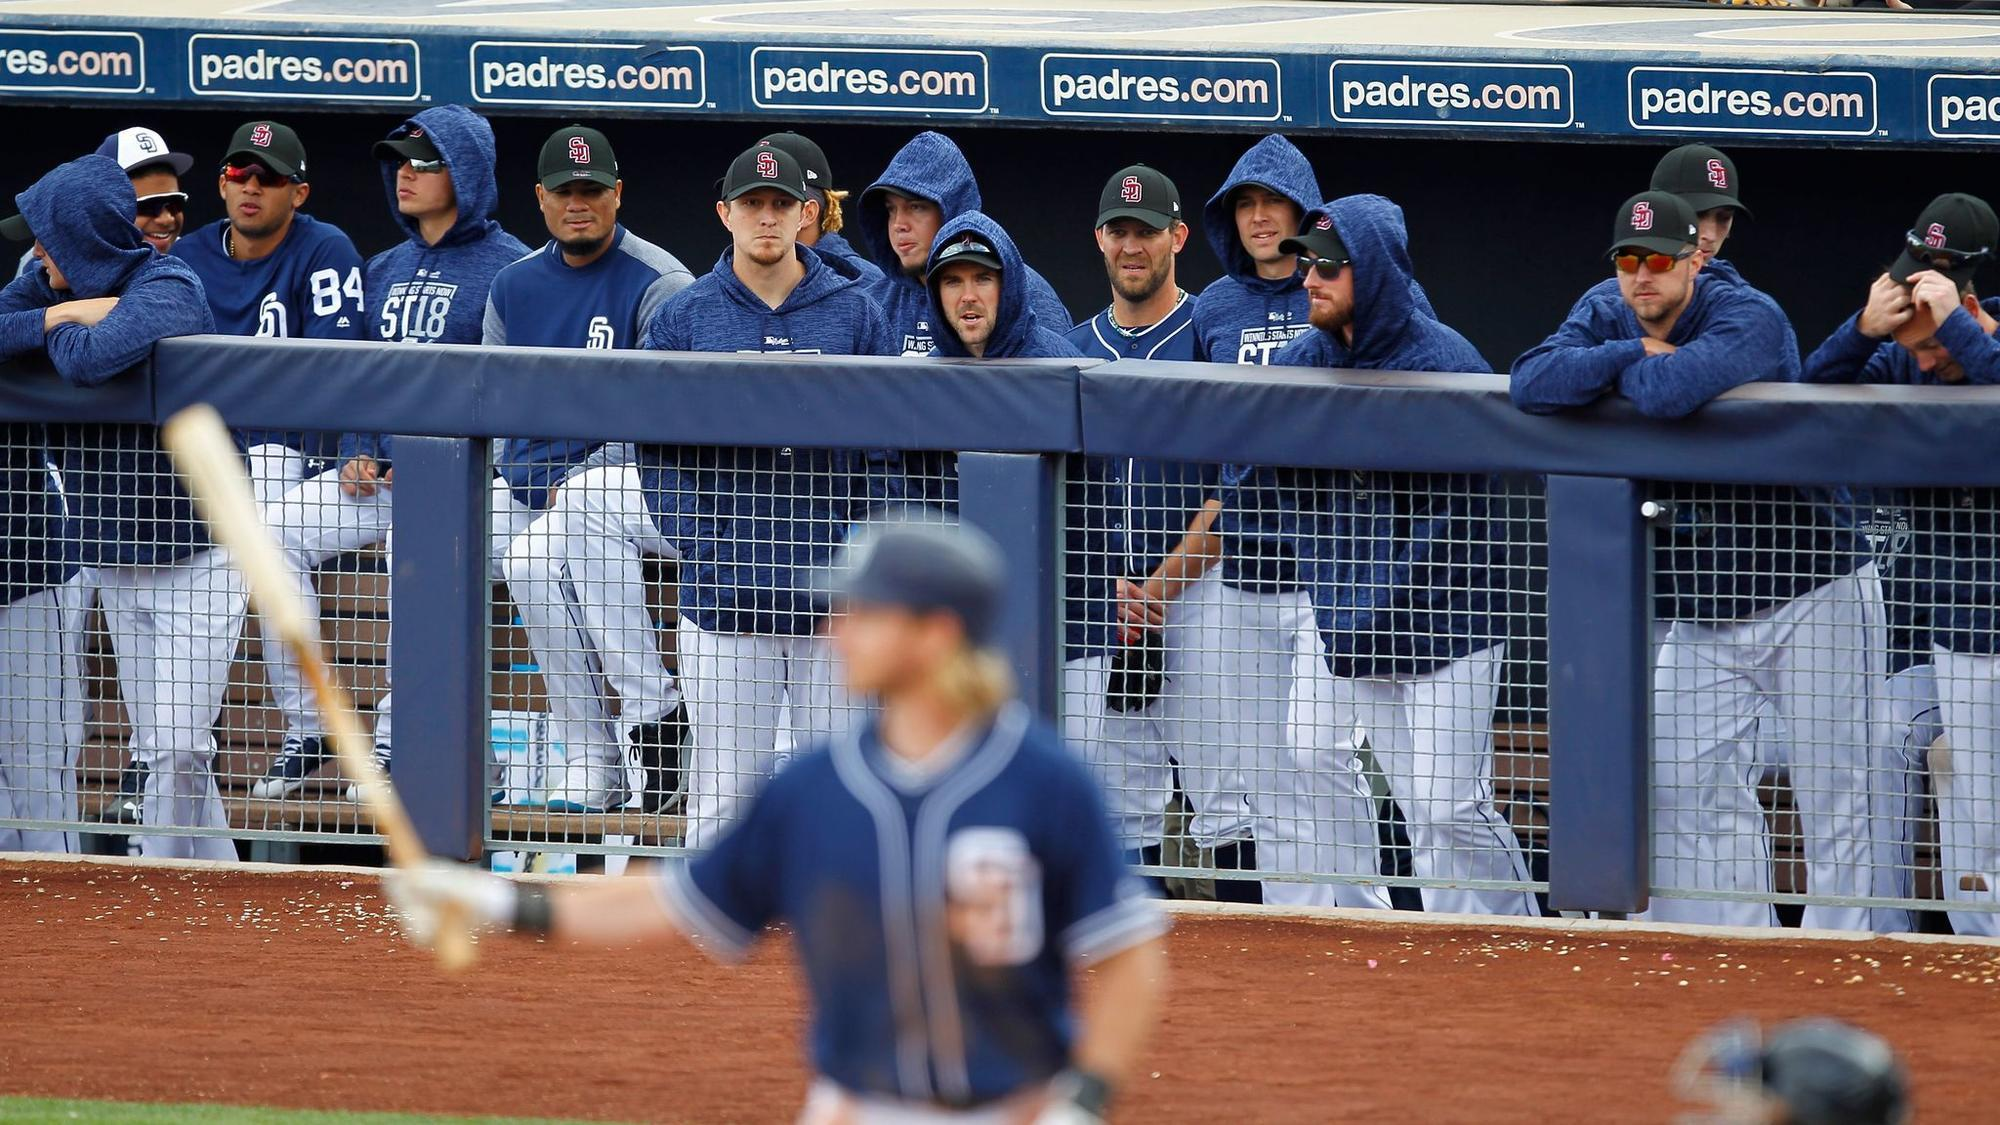 Sd-sp-padres-prospects-finish-spring-training-opener-0223